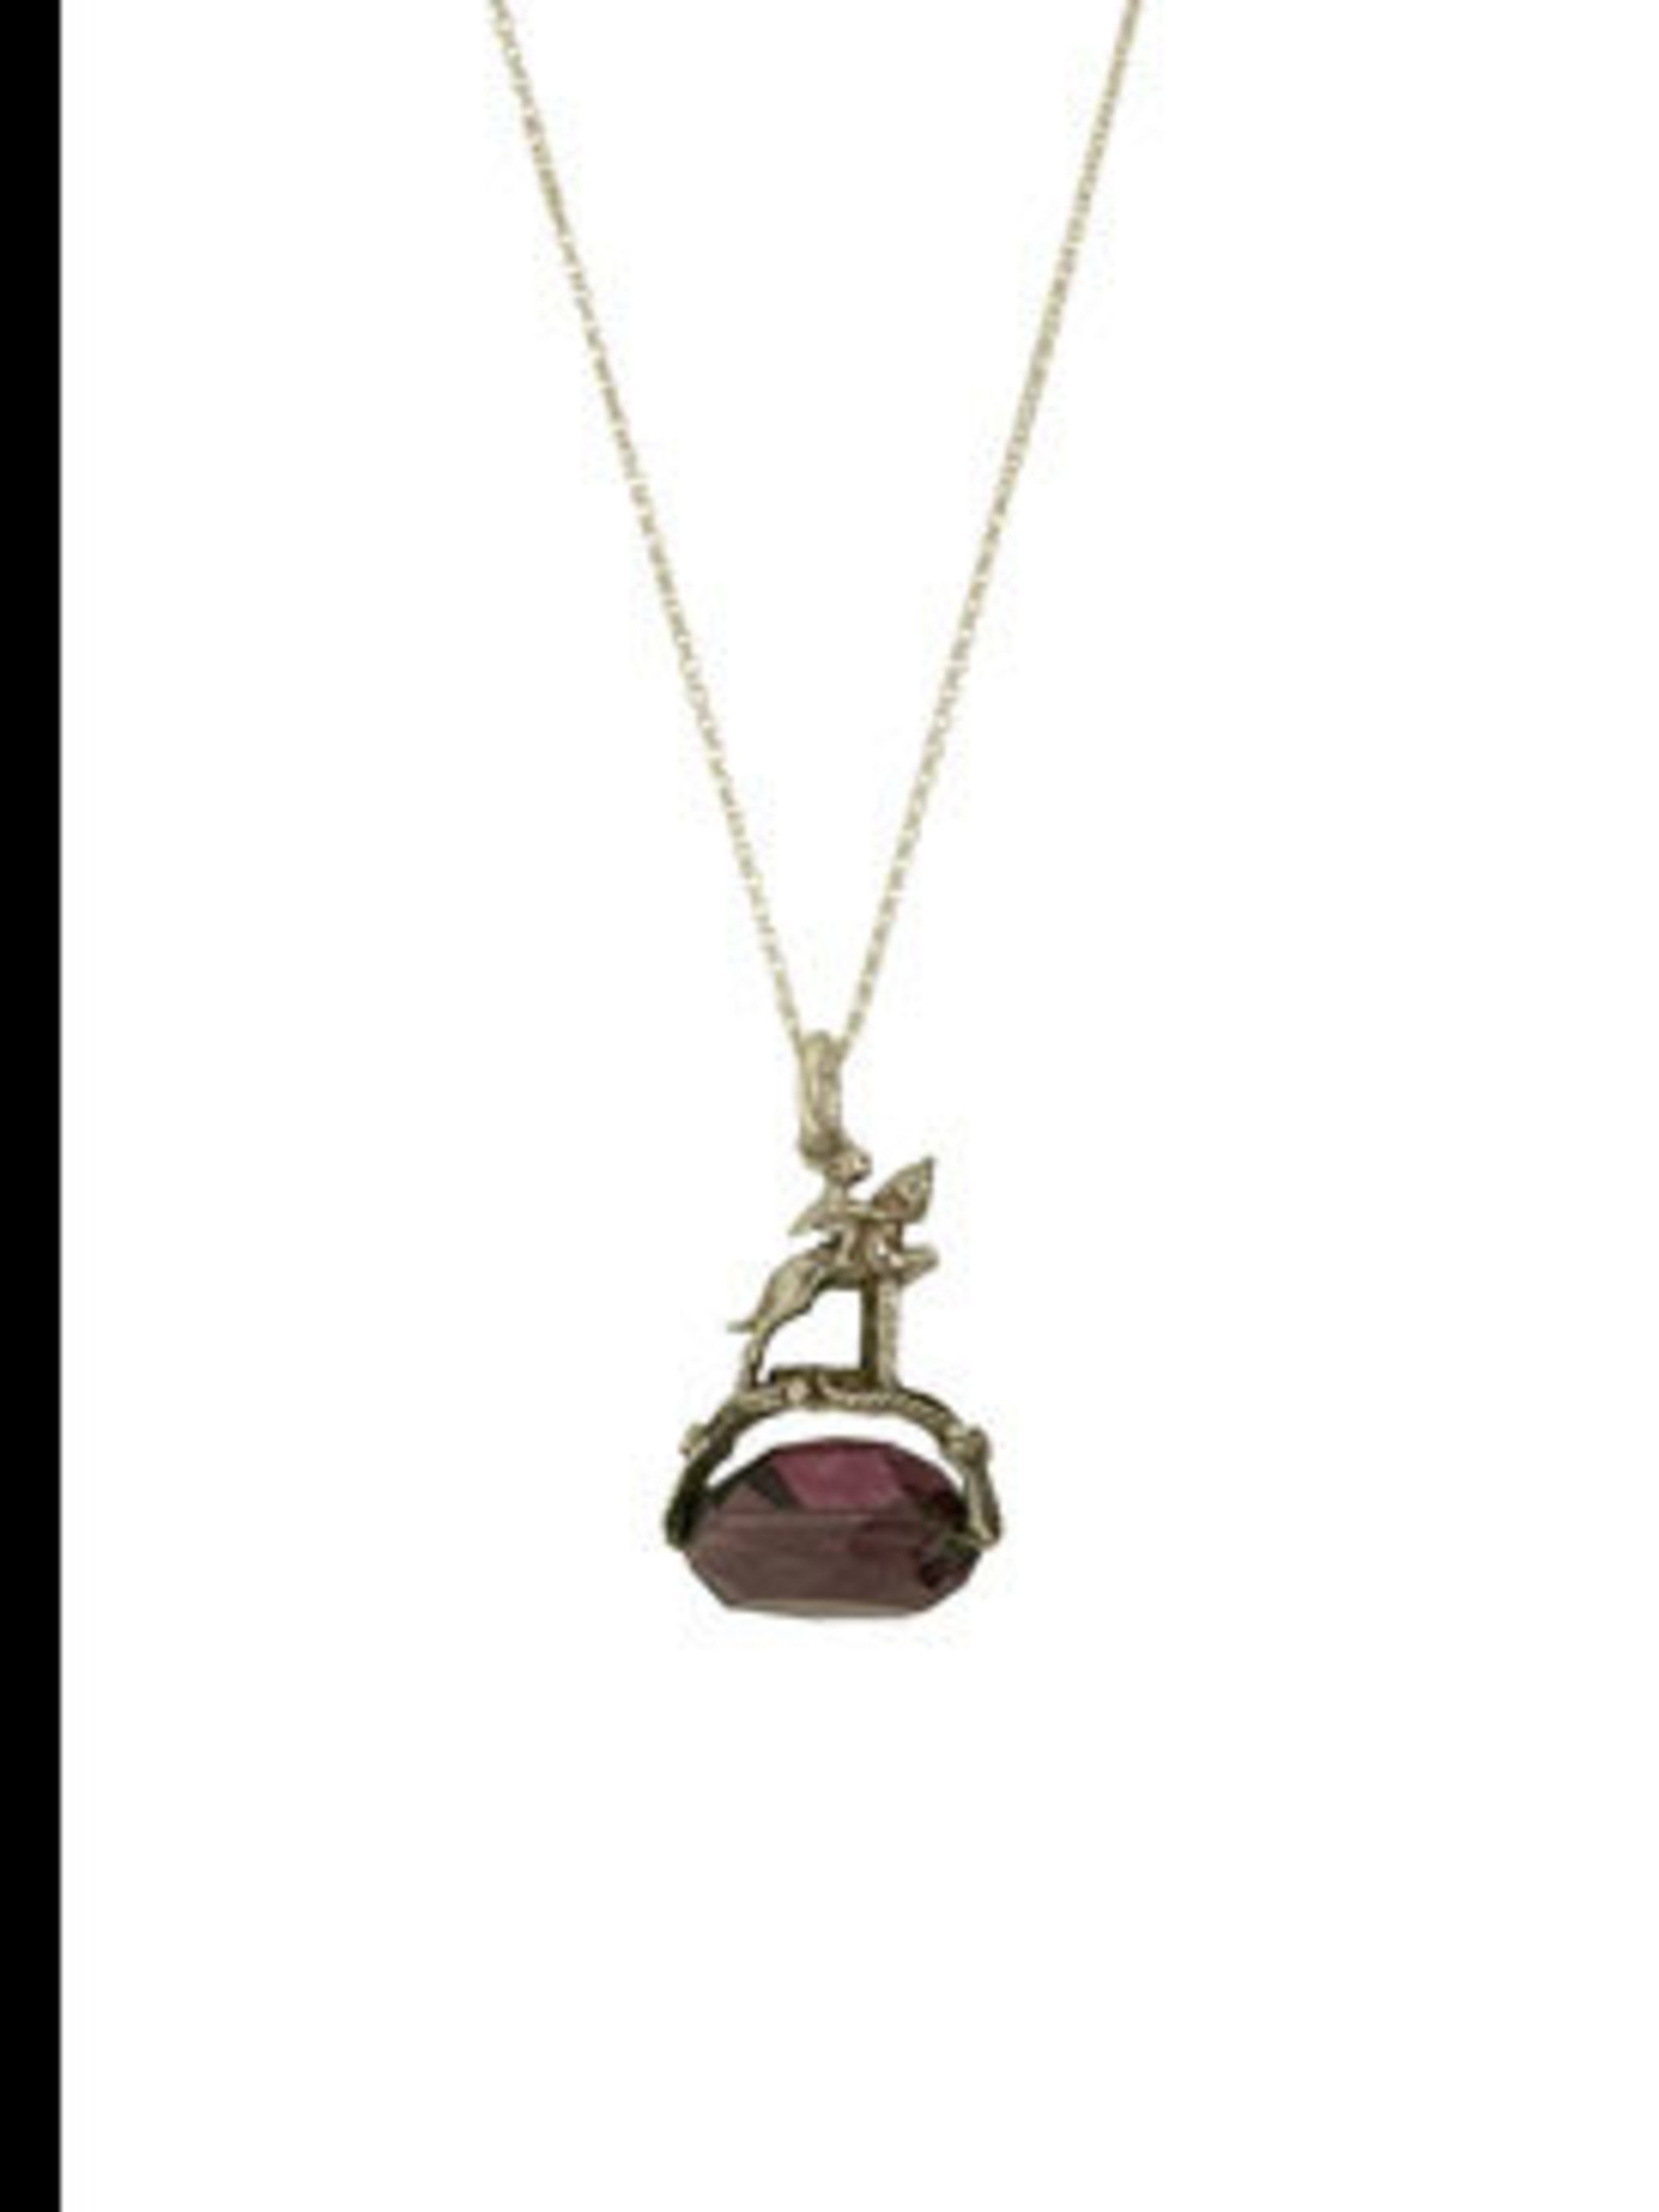 "<p>Amethyst pendant, £74, by Annina Vogel at <a href=""http://www.kabiri.co.uk/jewellery/necklaces/horse_jump_charm_pendant"">Kabiri</a></p>"